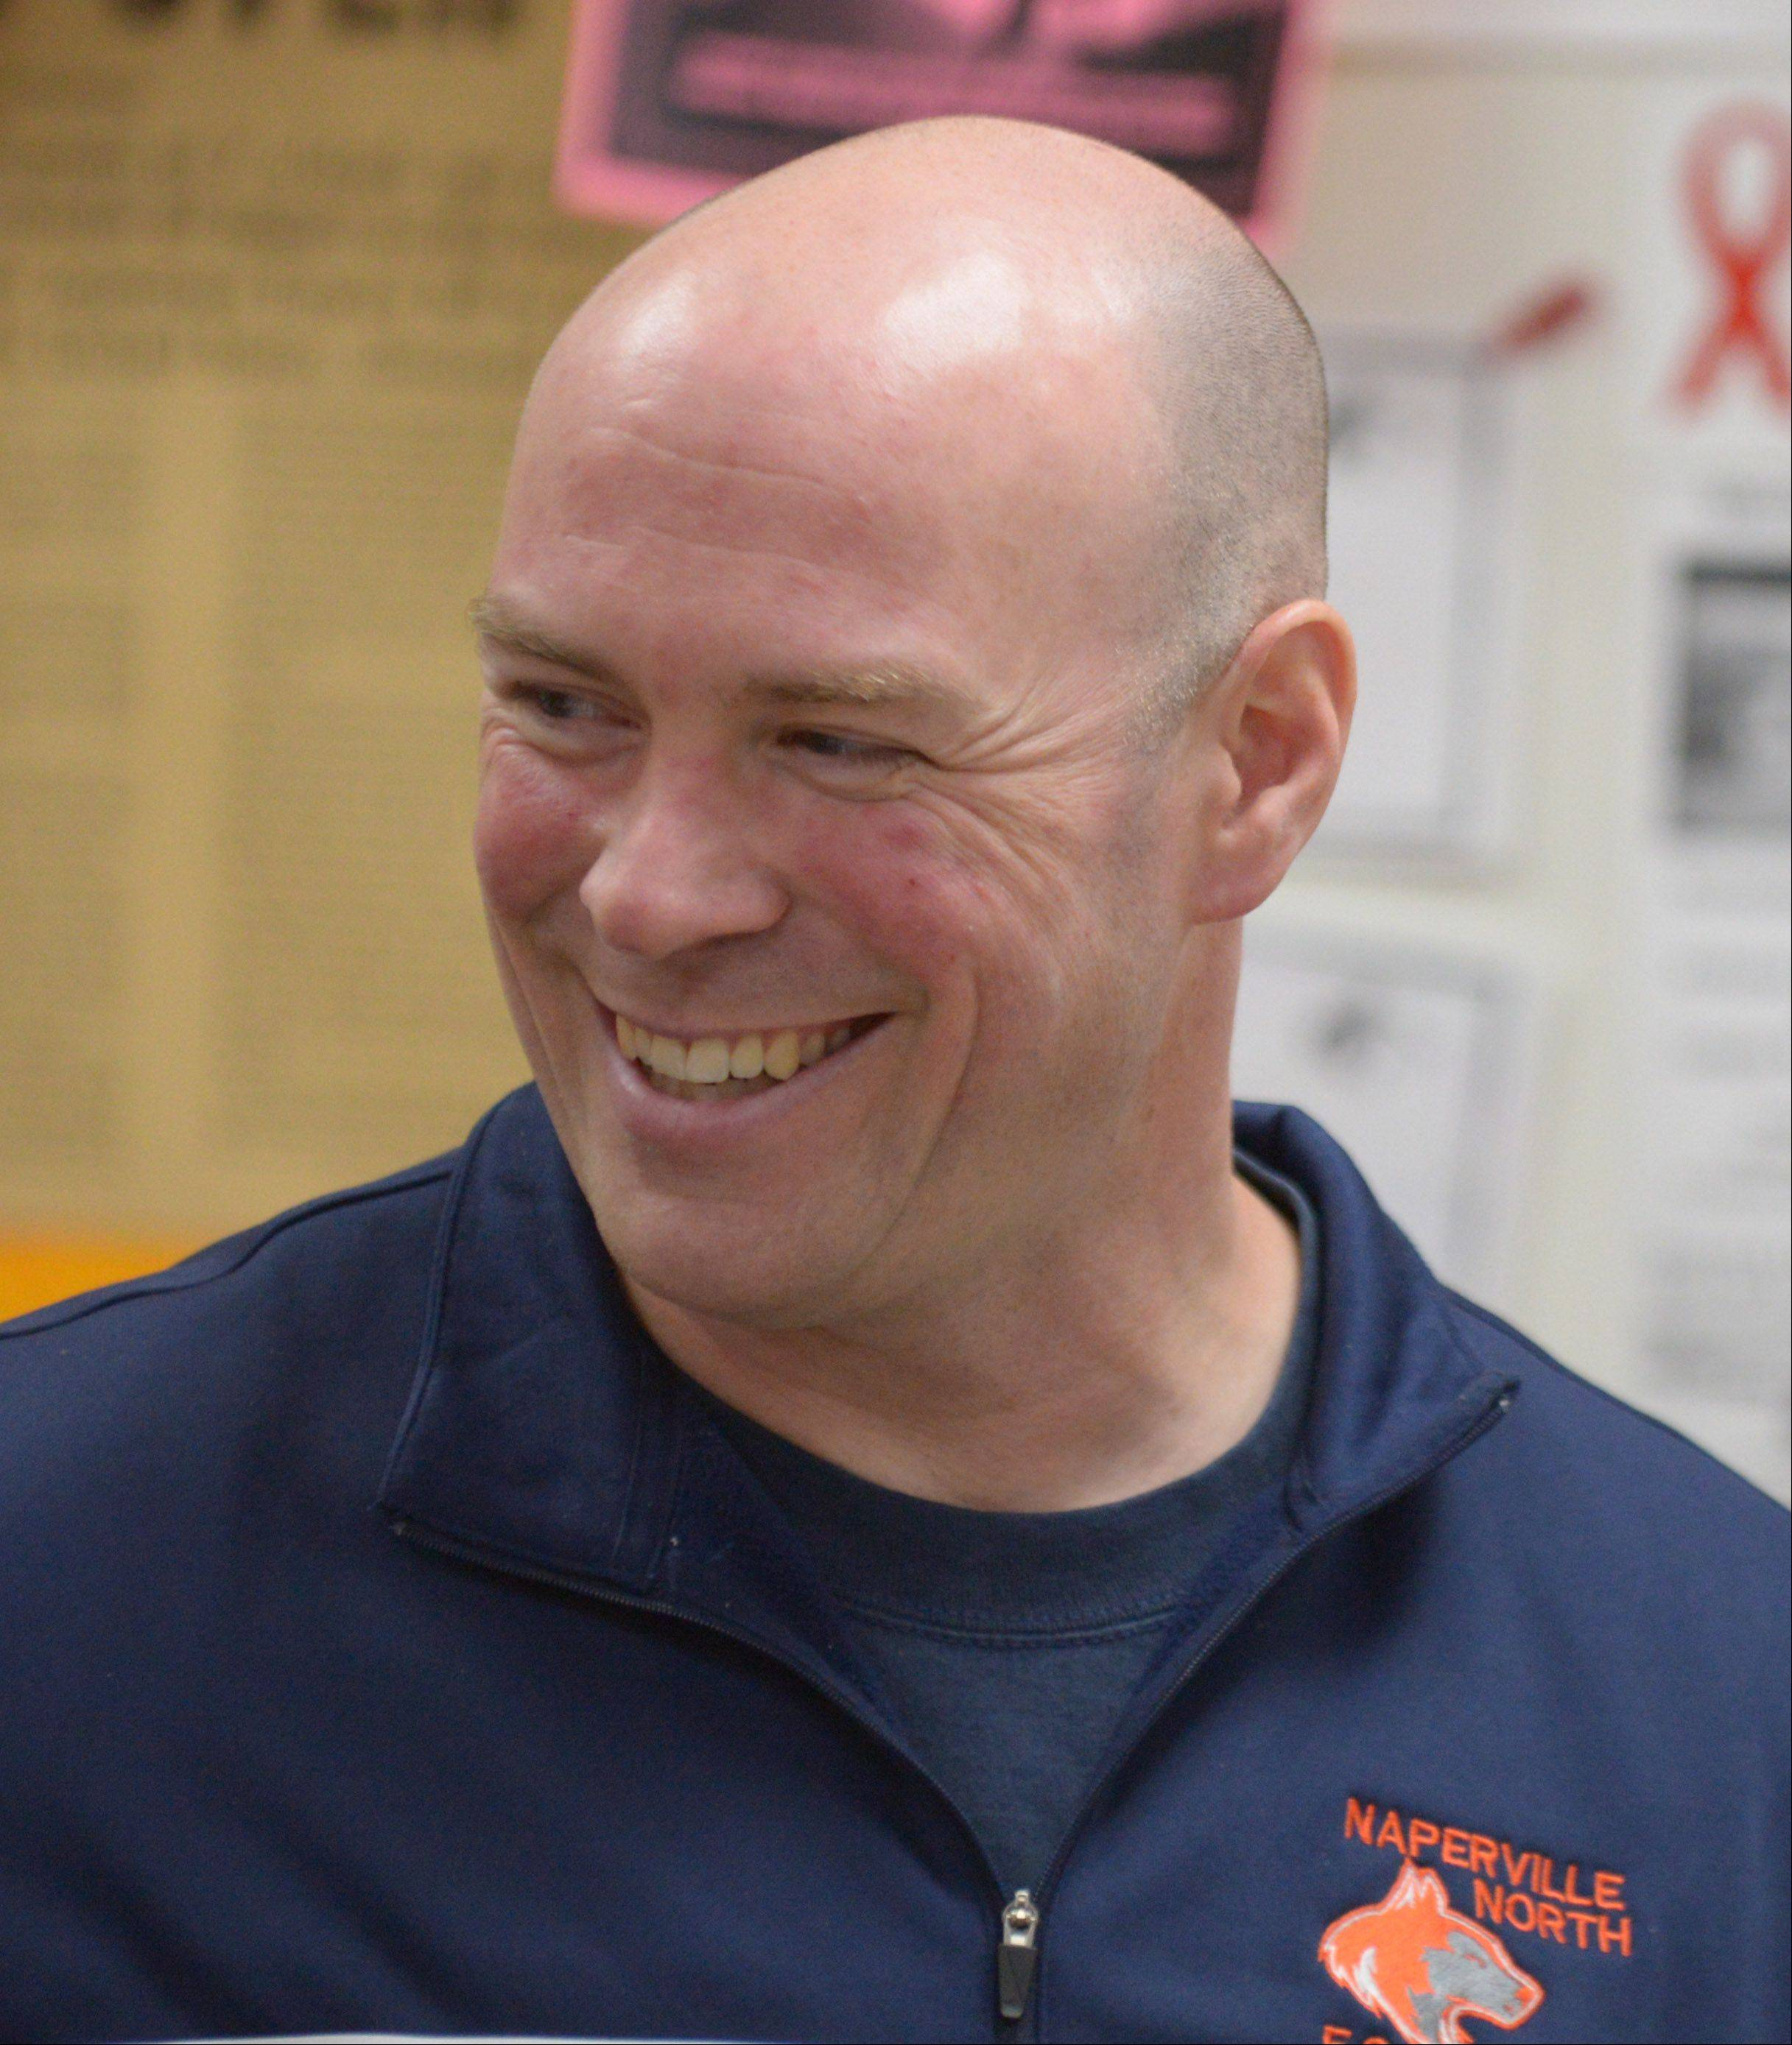 Michael Jelinek has a hand in a number of projects and activities at Naperville North, but tends to work behind the scenes and without fanfare.